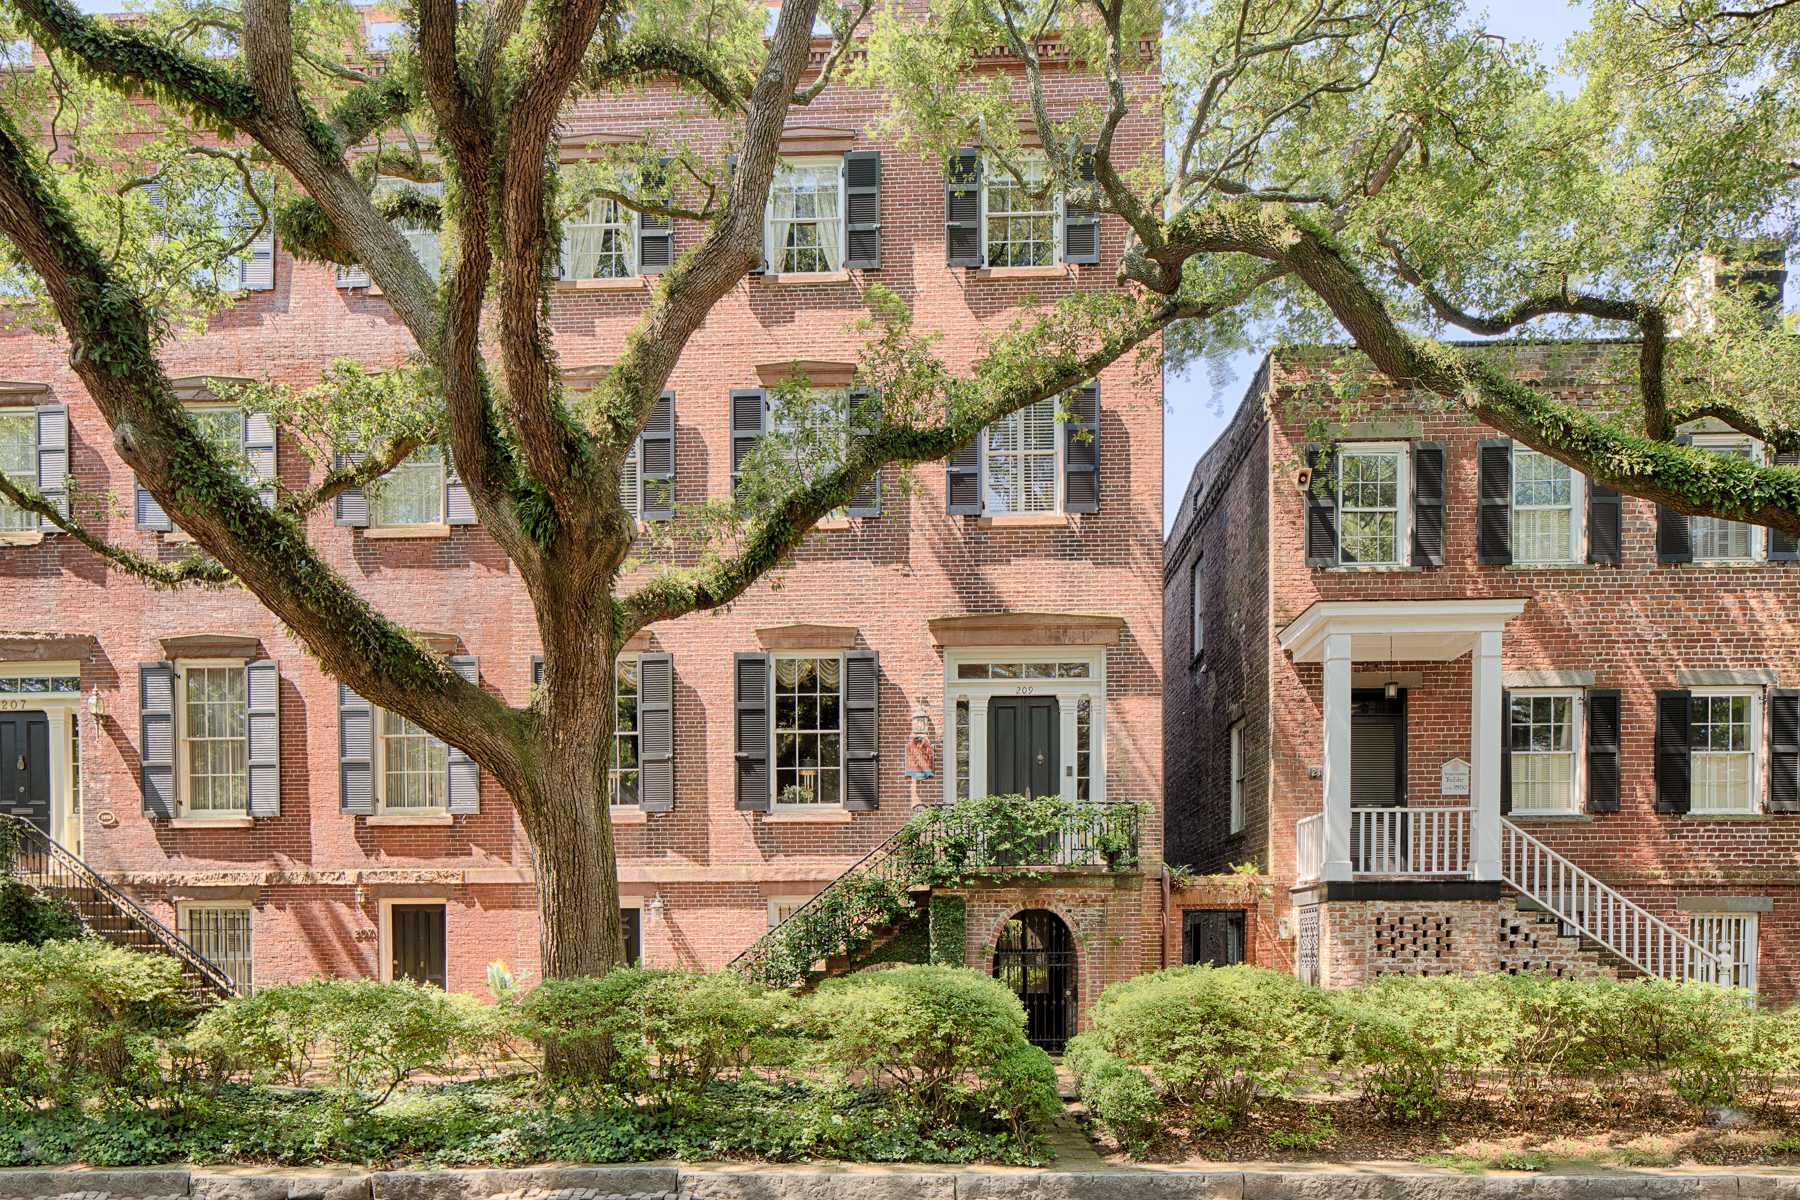 Vivienda unifamiliar por un Venta en 209 W. Jones St. 209 W. Jones St. Savannah, Georgia 31401 Estados Unidos